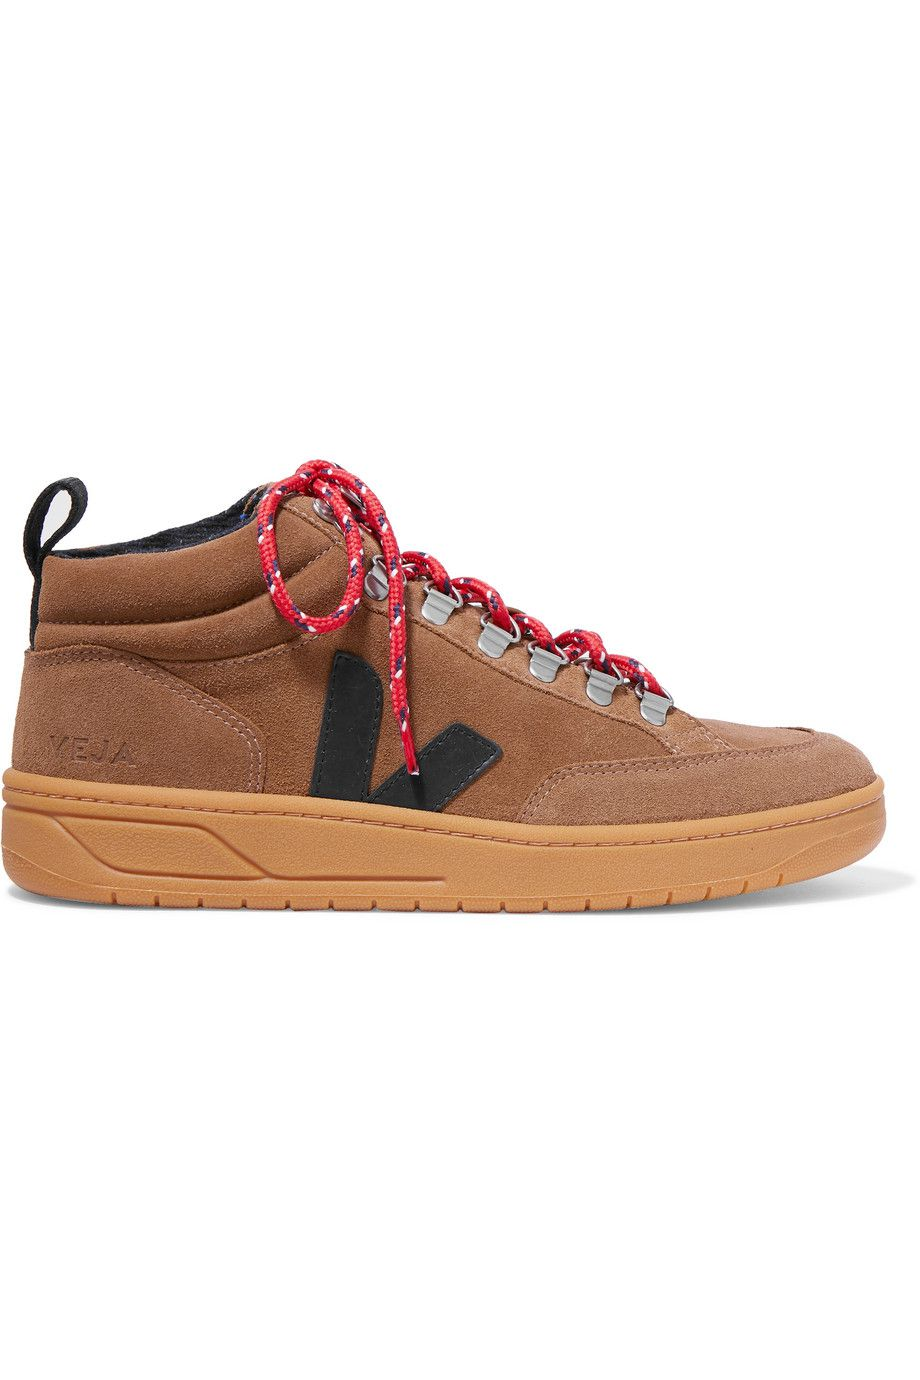 Veja Net Sustain Roraima Leather High-top Sneakers